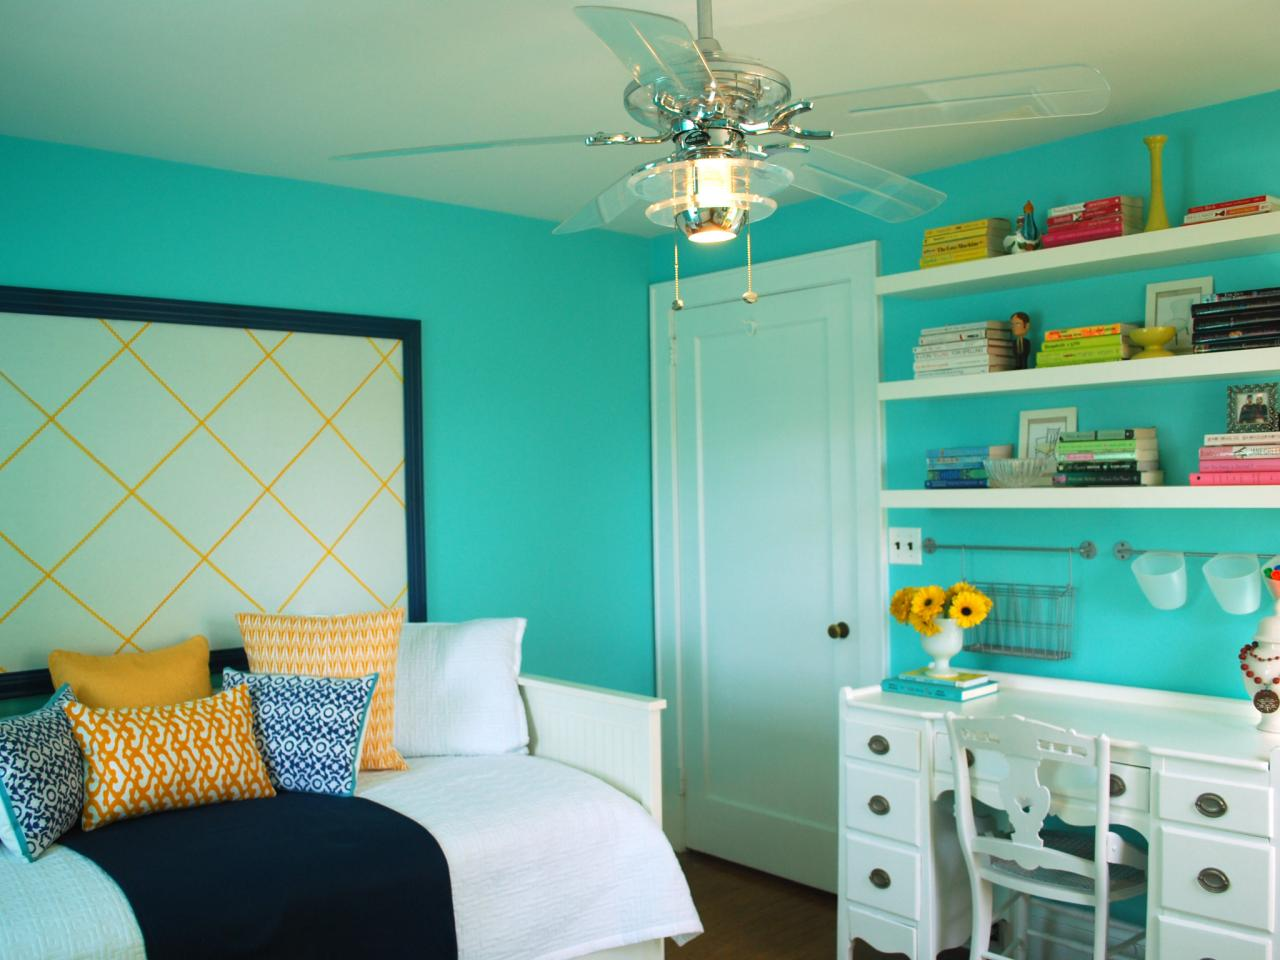 Lovely Blue Bedroom Color Ideas in Small Area with White Desk and Classic Chair near Single Bed